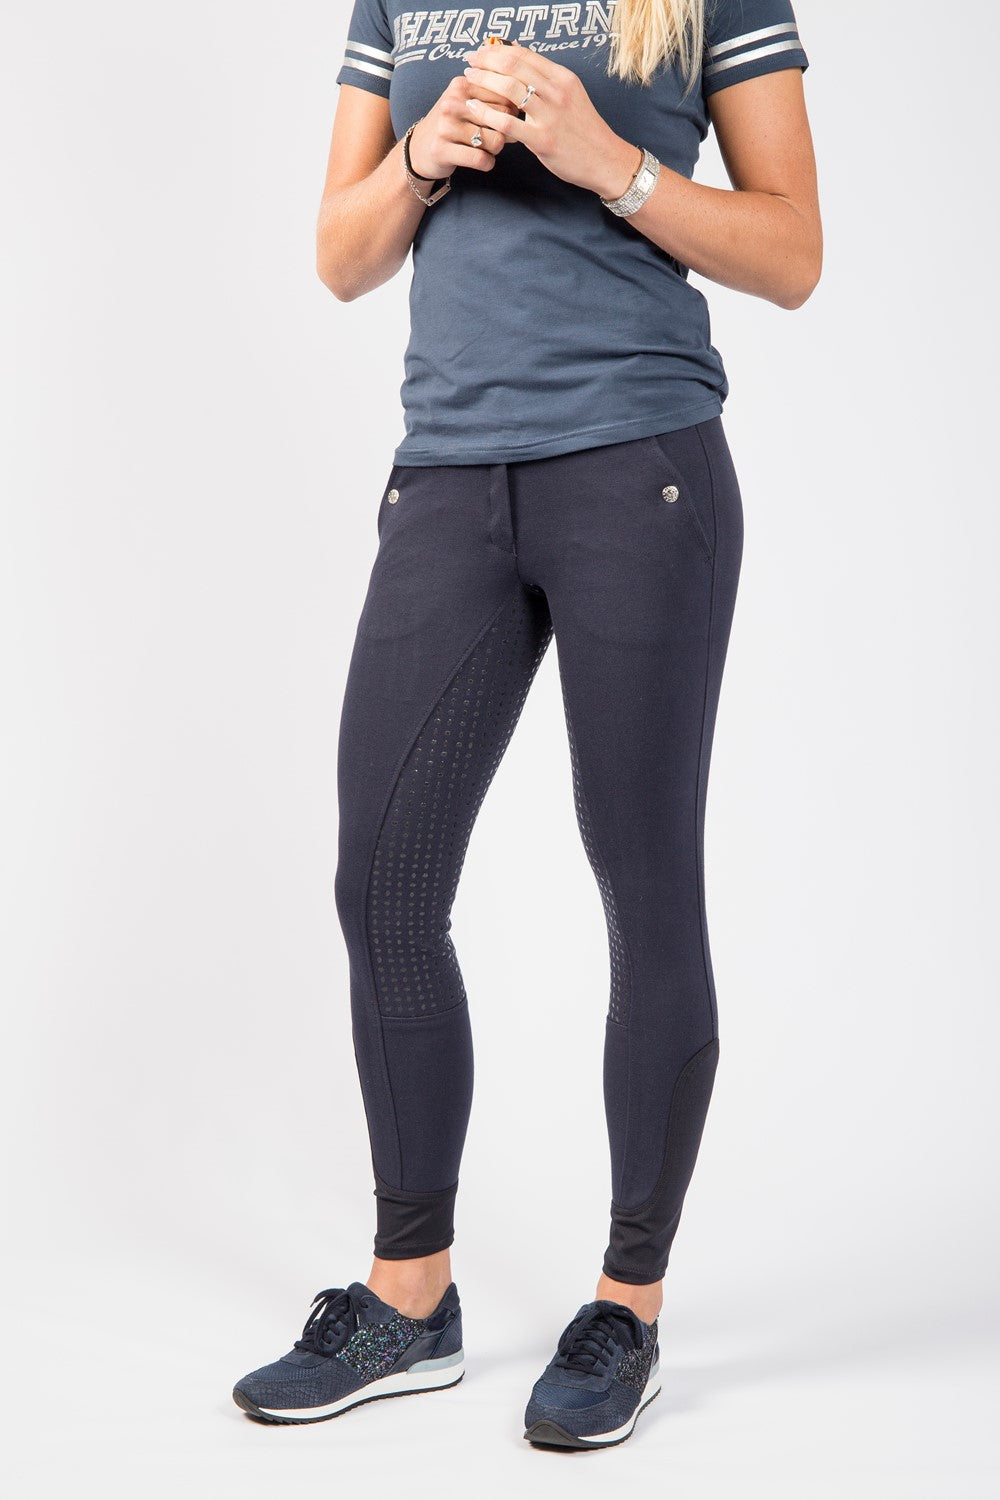 Benijig II full seat breeches